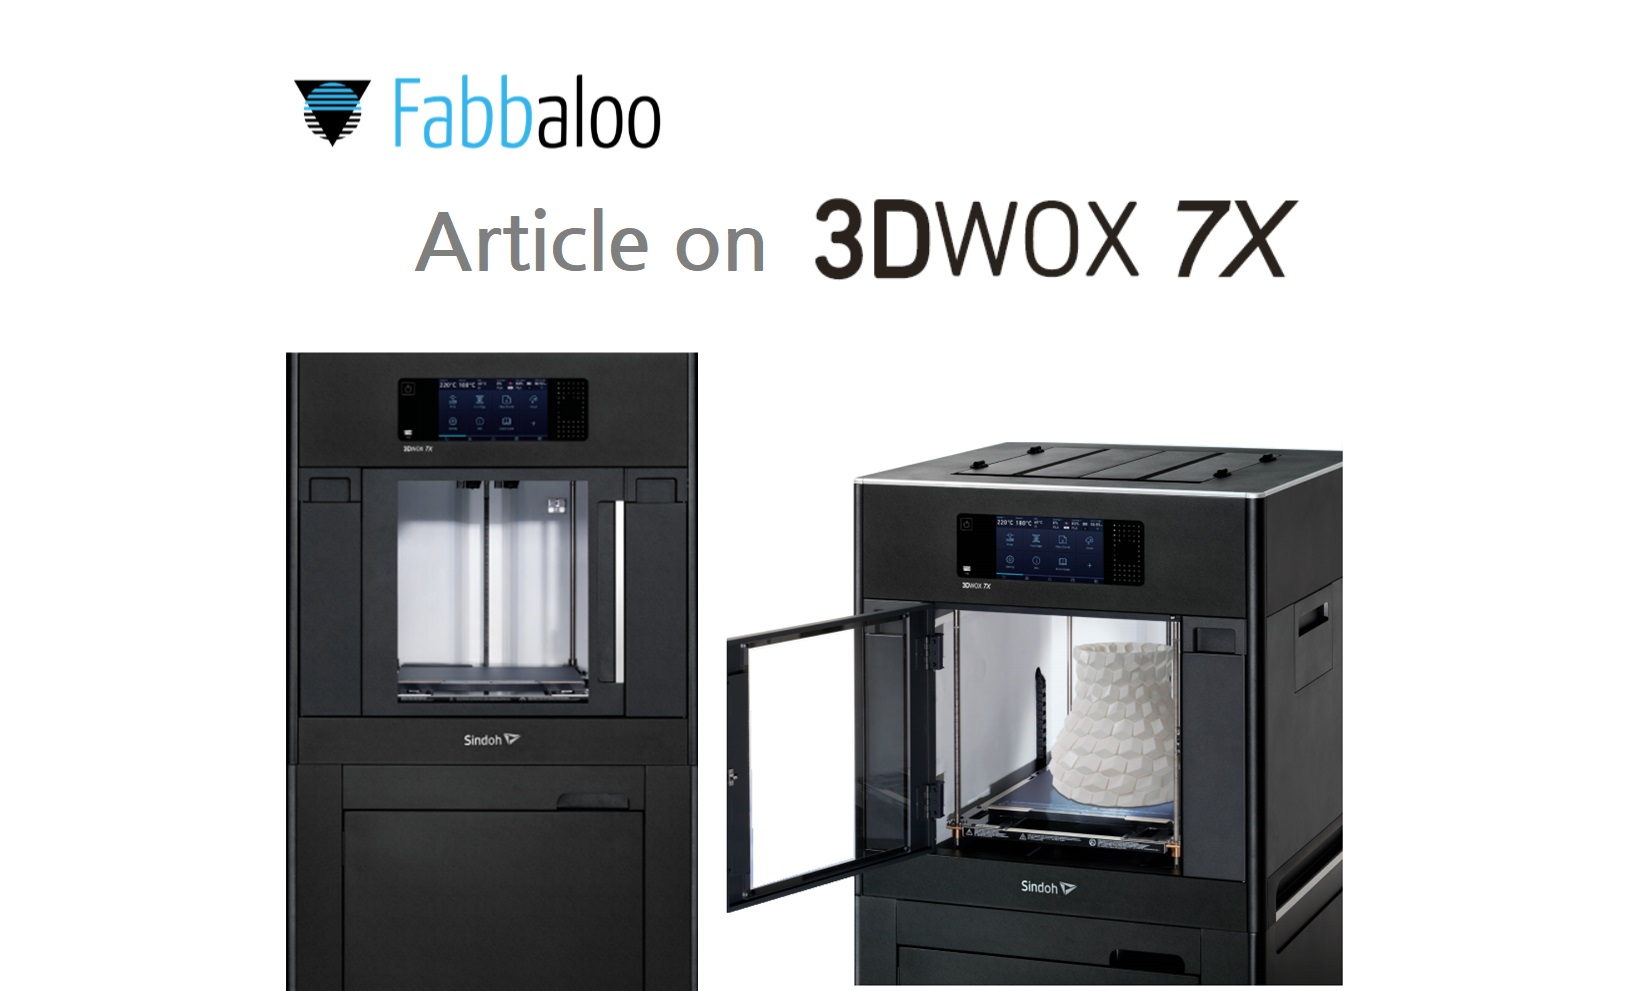 The Upcoming Sindoh 3D Printer, 3DWOX 7X by General Fabb, Fabbaloo.com